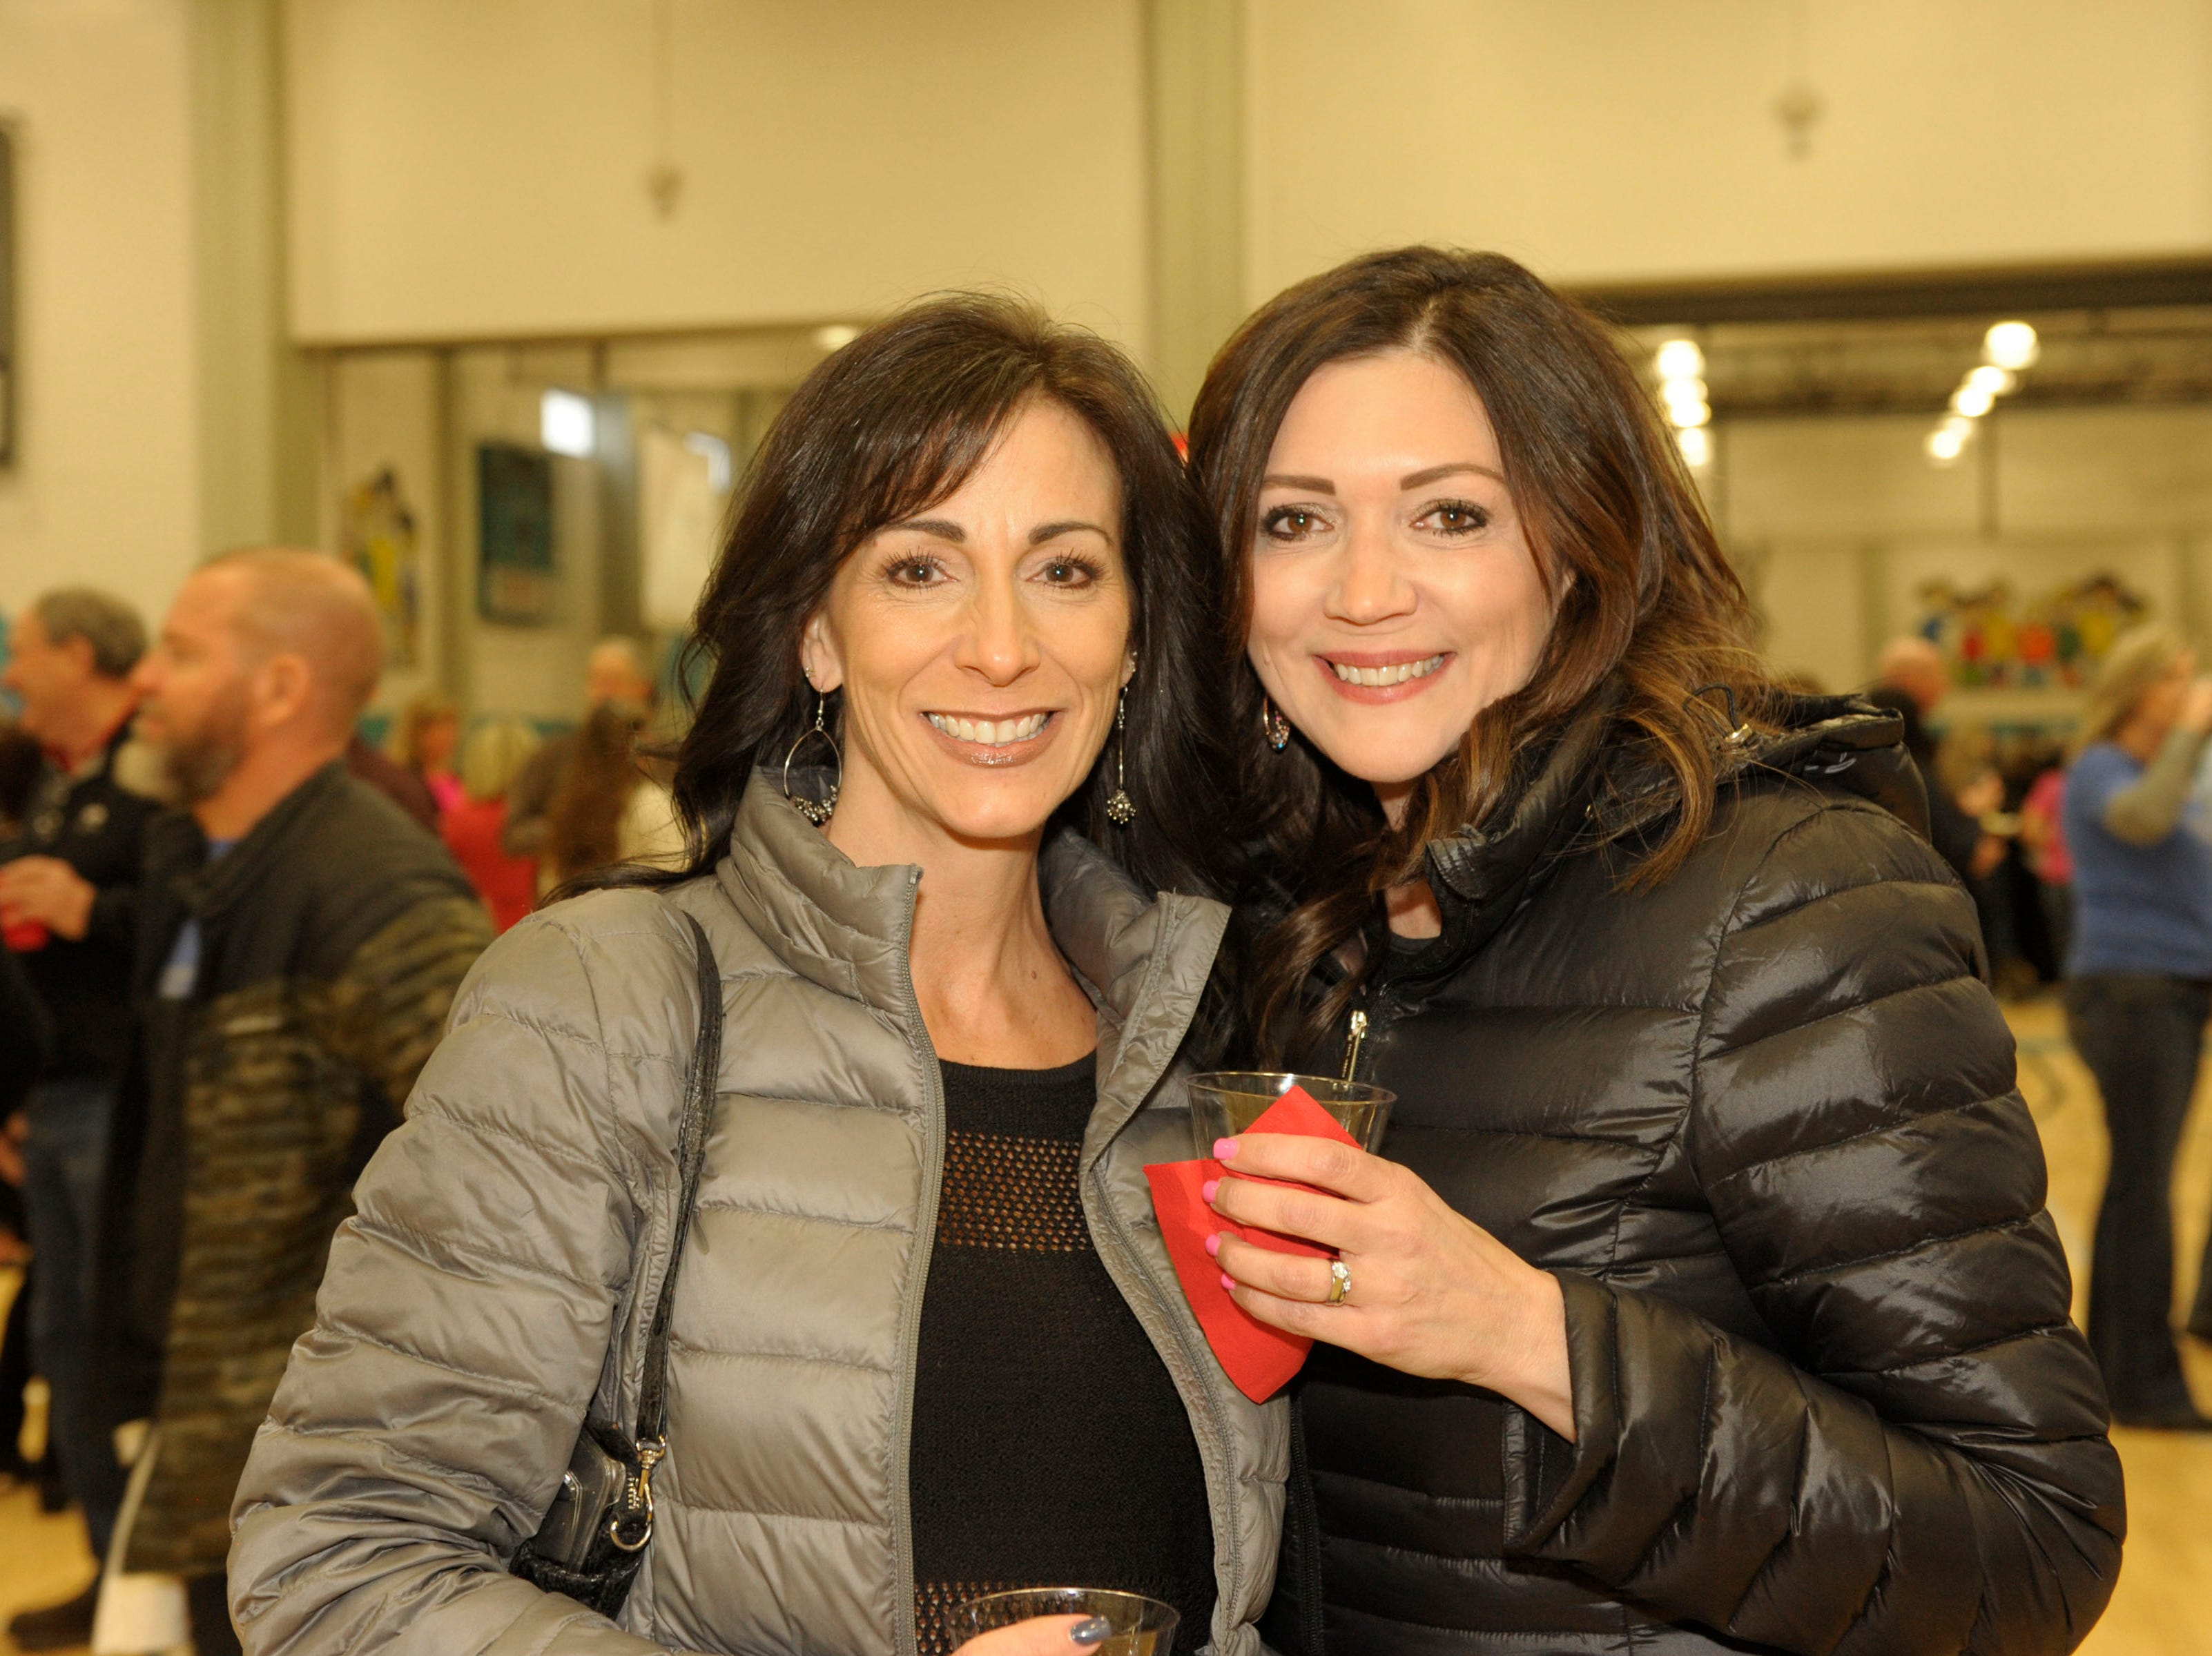 Tawnya Renwick and Zena Kane attend the 39th Annual Jack T. Reviglio Cioppino Feed and Auction at the Boys & Girls Club of Truckee Meadows Sat., Feb. 23, 2019. Photos by Lisa J. Tolda/Special to the RGJ.